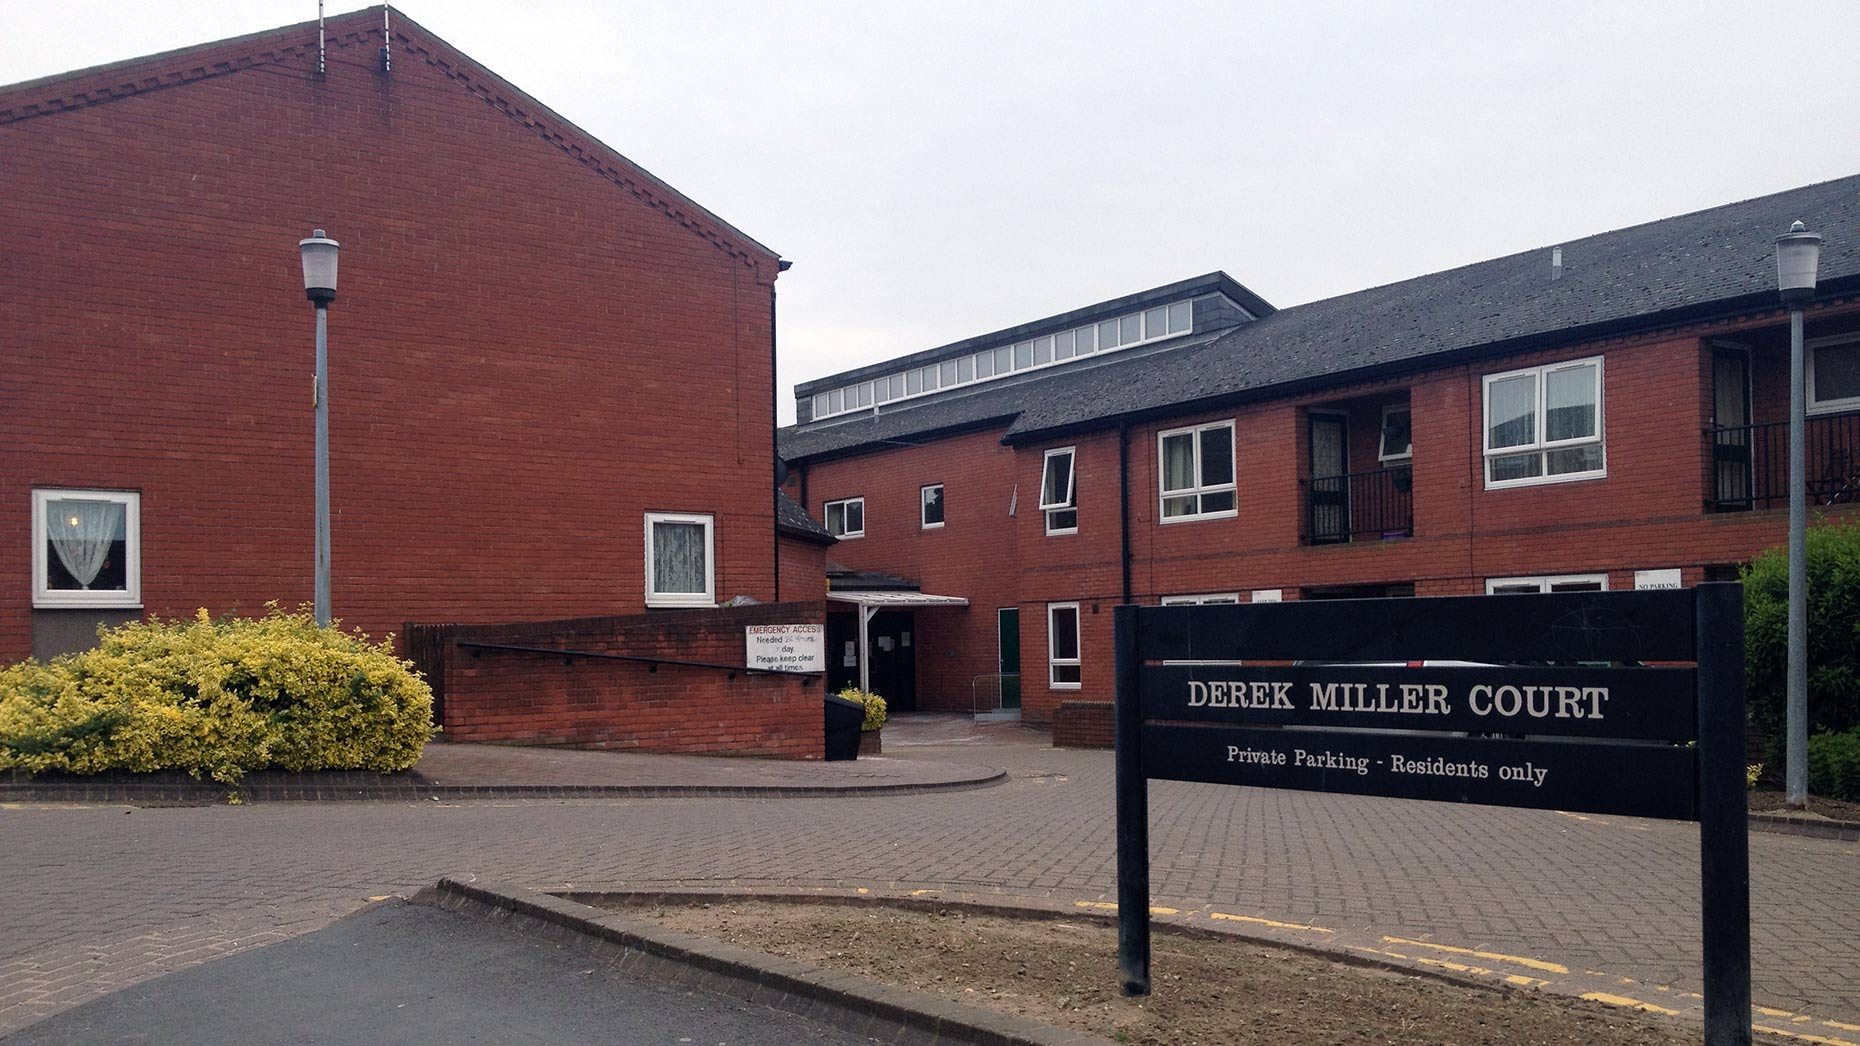 The council's other sheltered accommodation property, Derek Miller Court on Newland Street West, will be left as it currently stands.